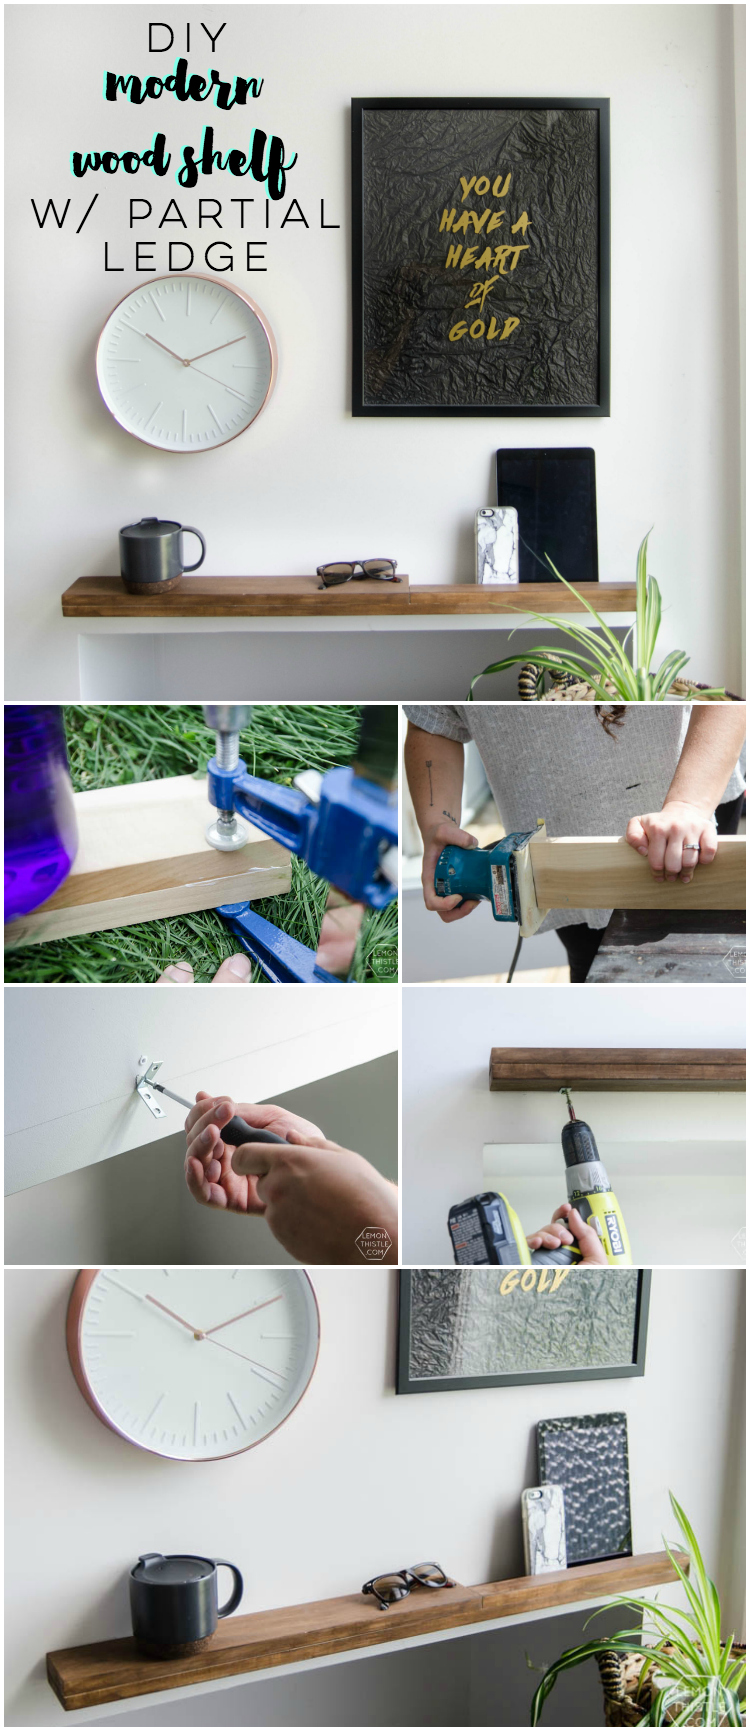 I LOVE this DIY modern wood shelf for an entry way. It's totally minimal but really functional with that ledge.